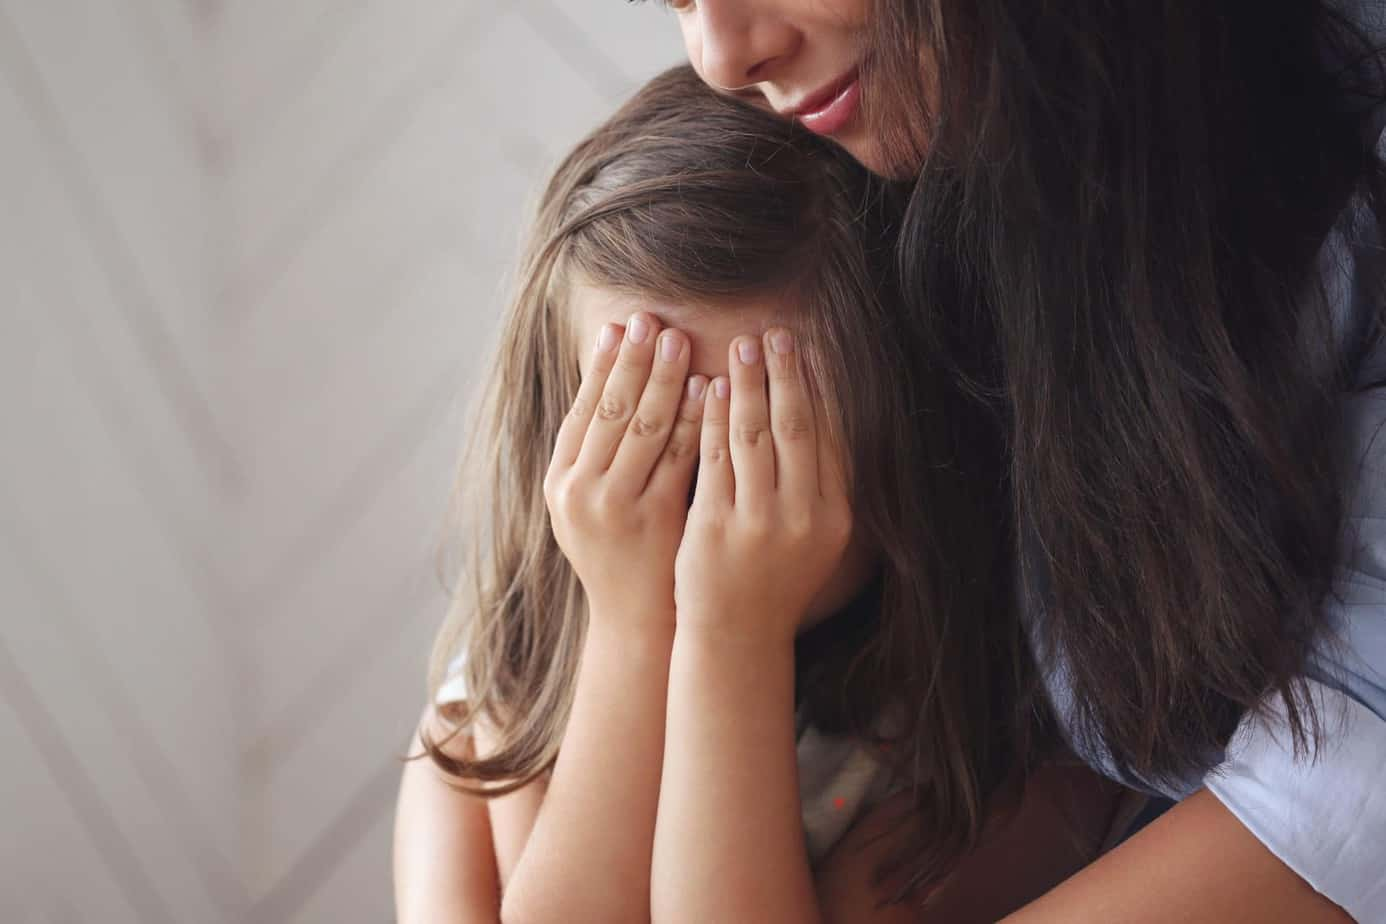 Nurturing Children - 11 Tools for What Makes a Child Successful in Life